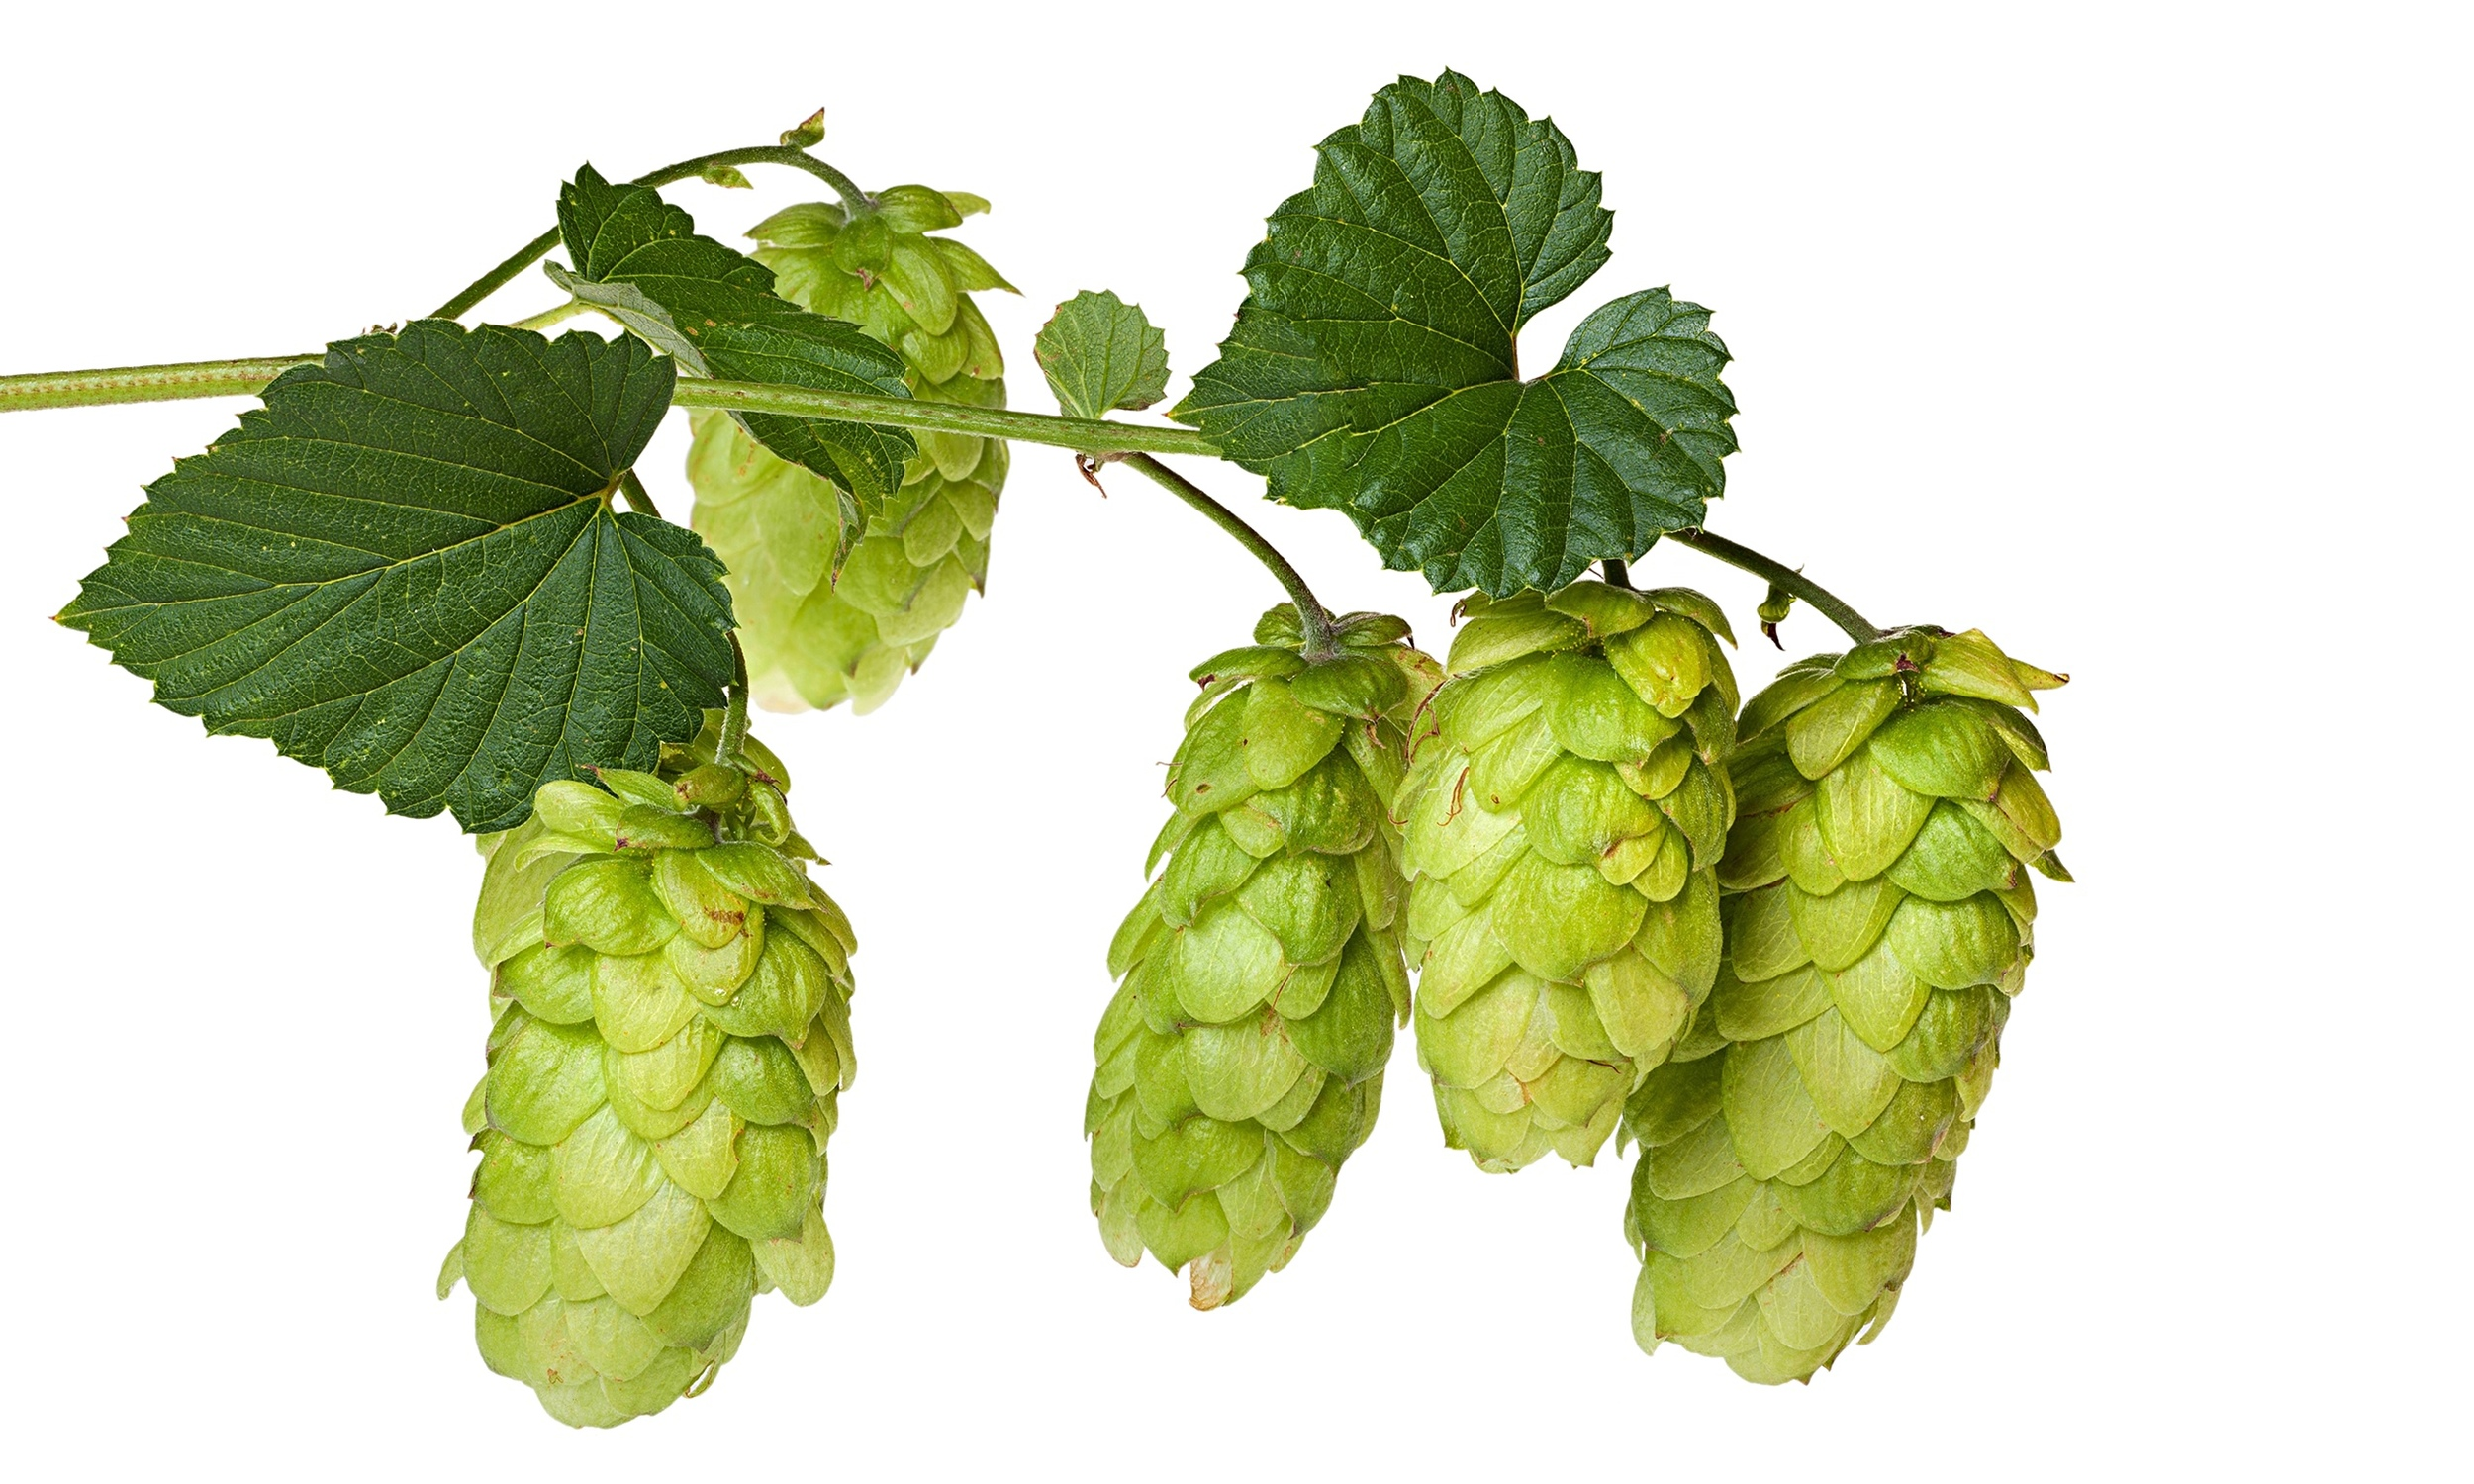 Hops-on-the-branch.-The-n-014.jpg